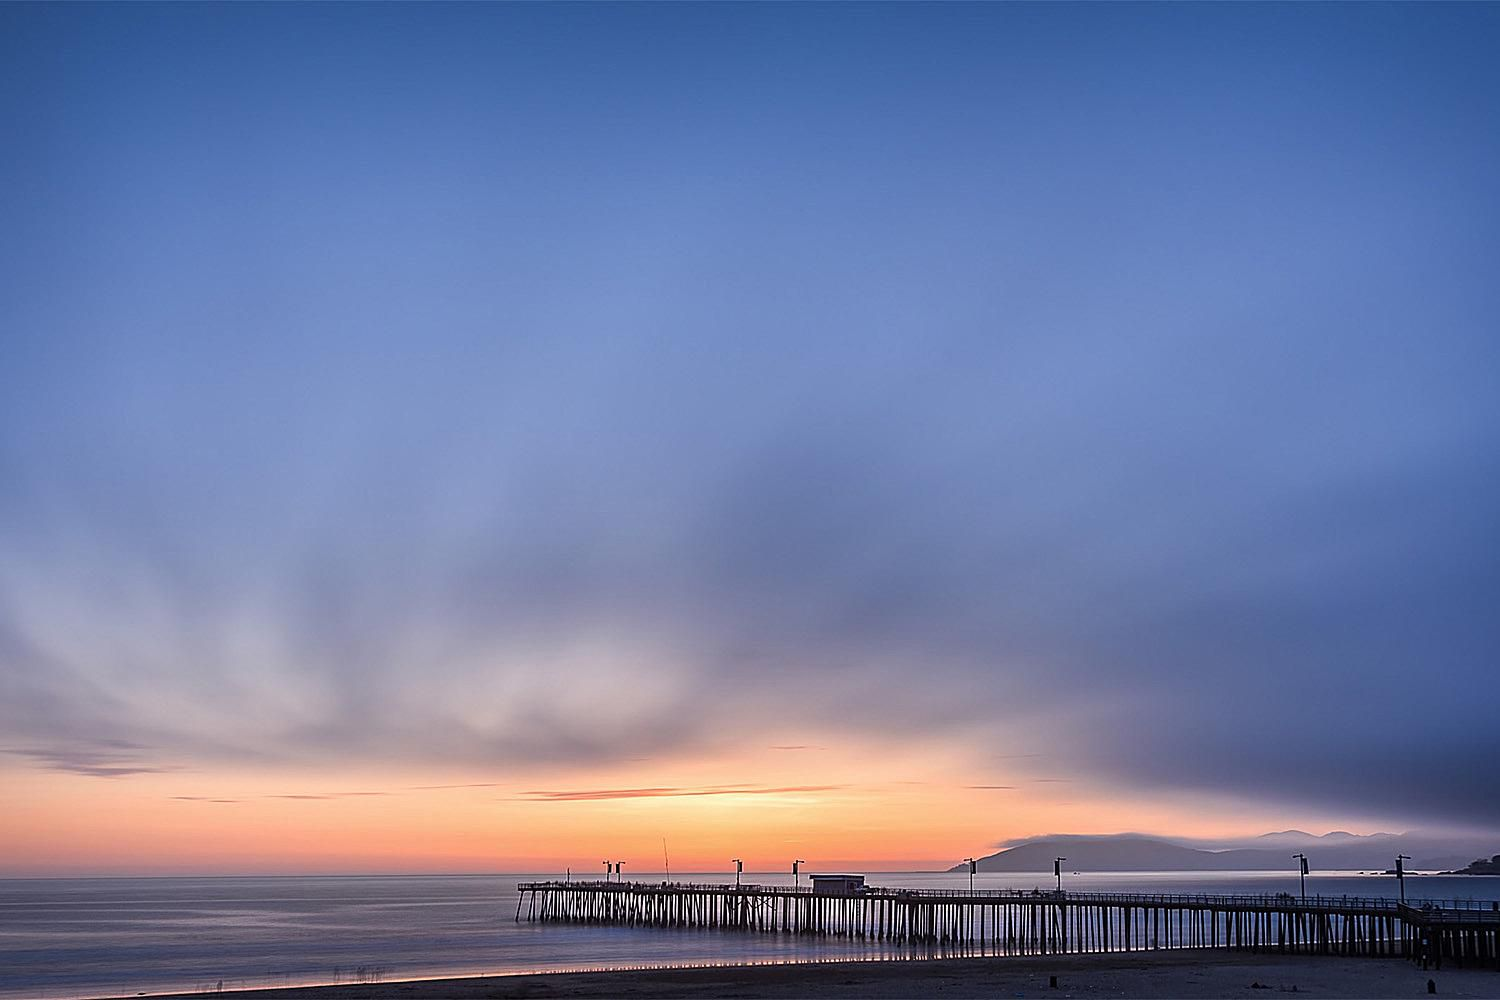 Sunset Over the Pismo Beach Pier